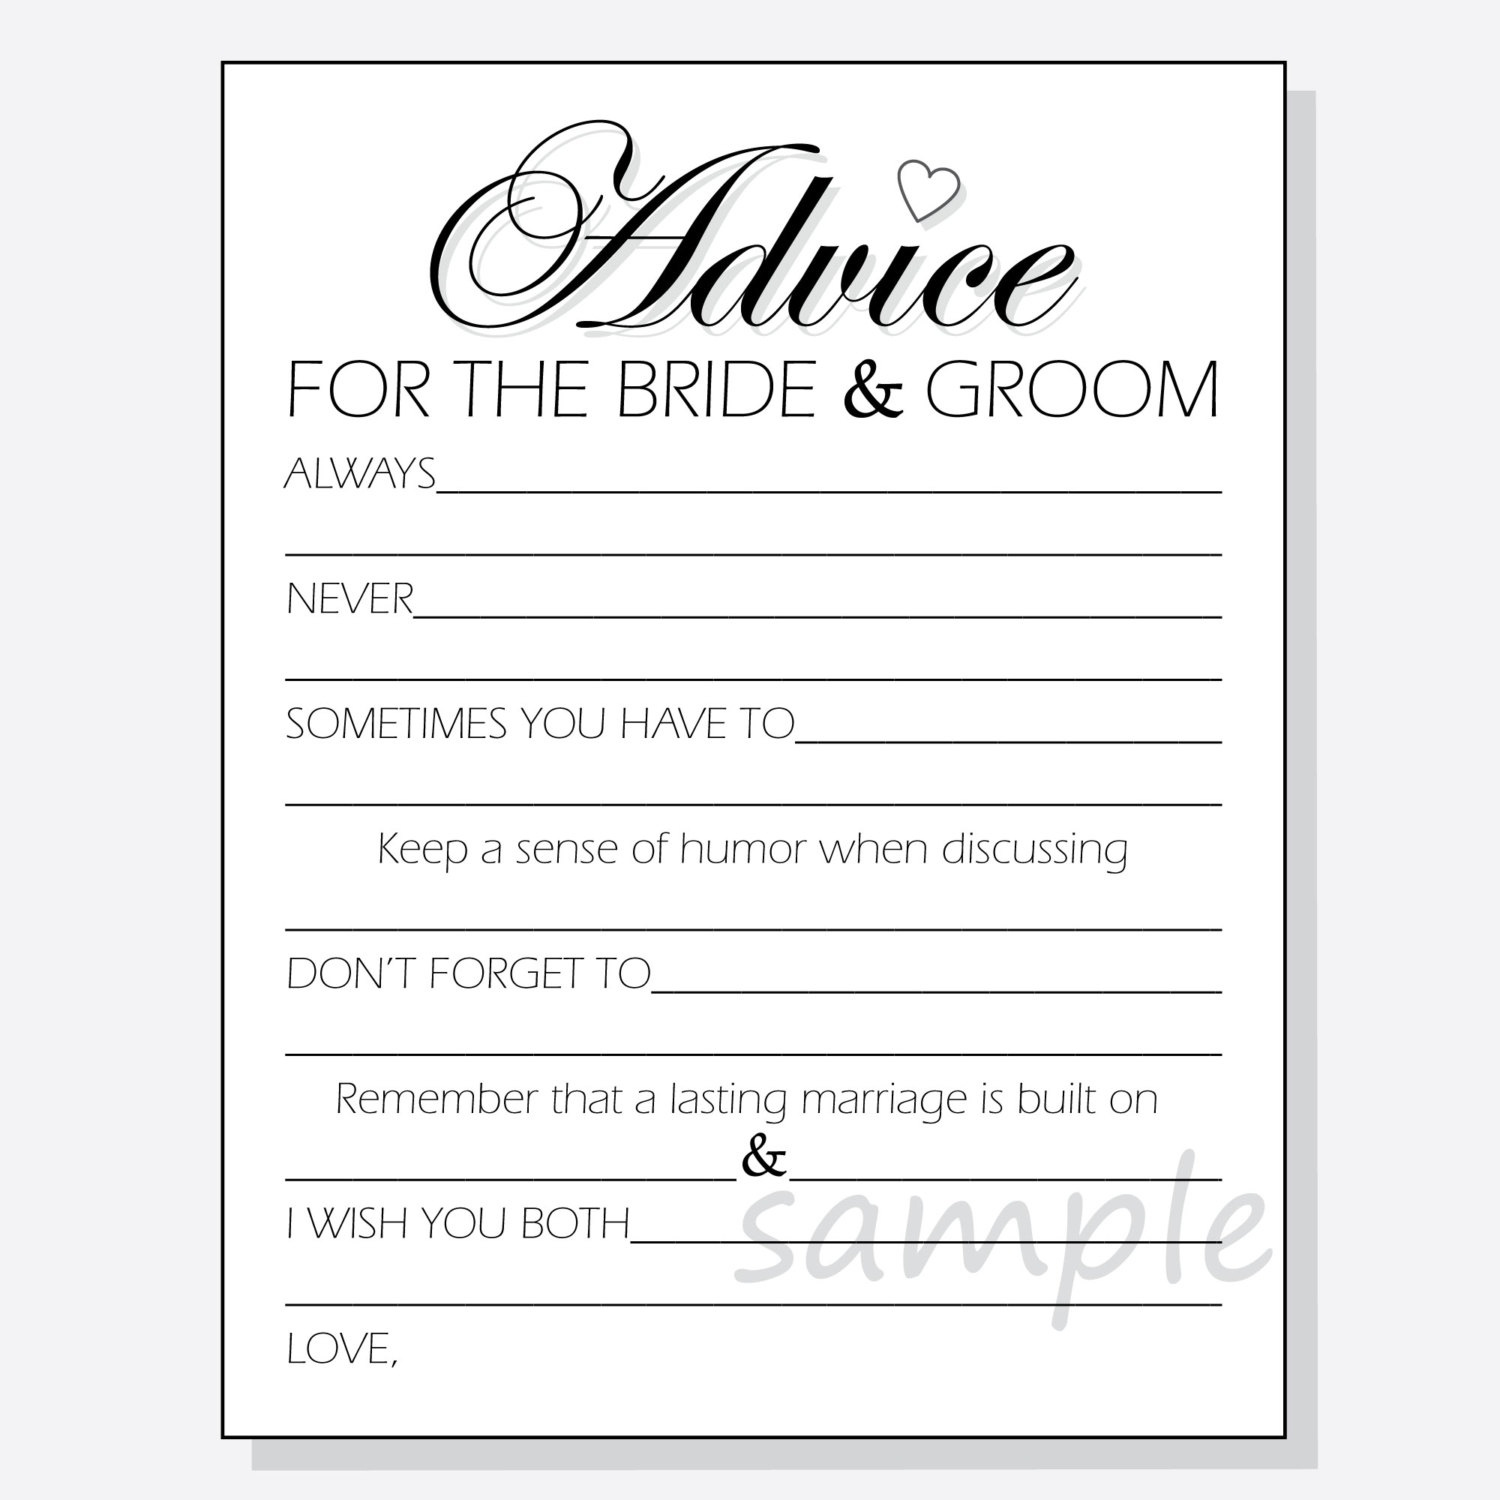 Diy Advice For The Bride & Groom Printable Cards For A Shower | Etsy - Free Printable Bridal Shower Advice Cards